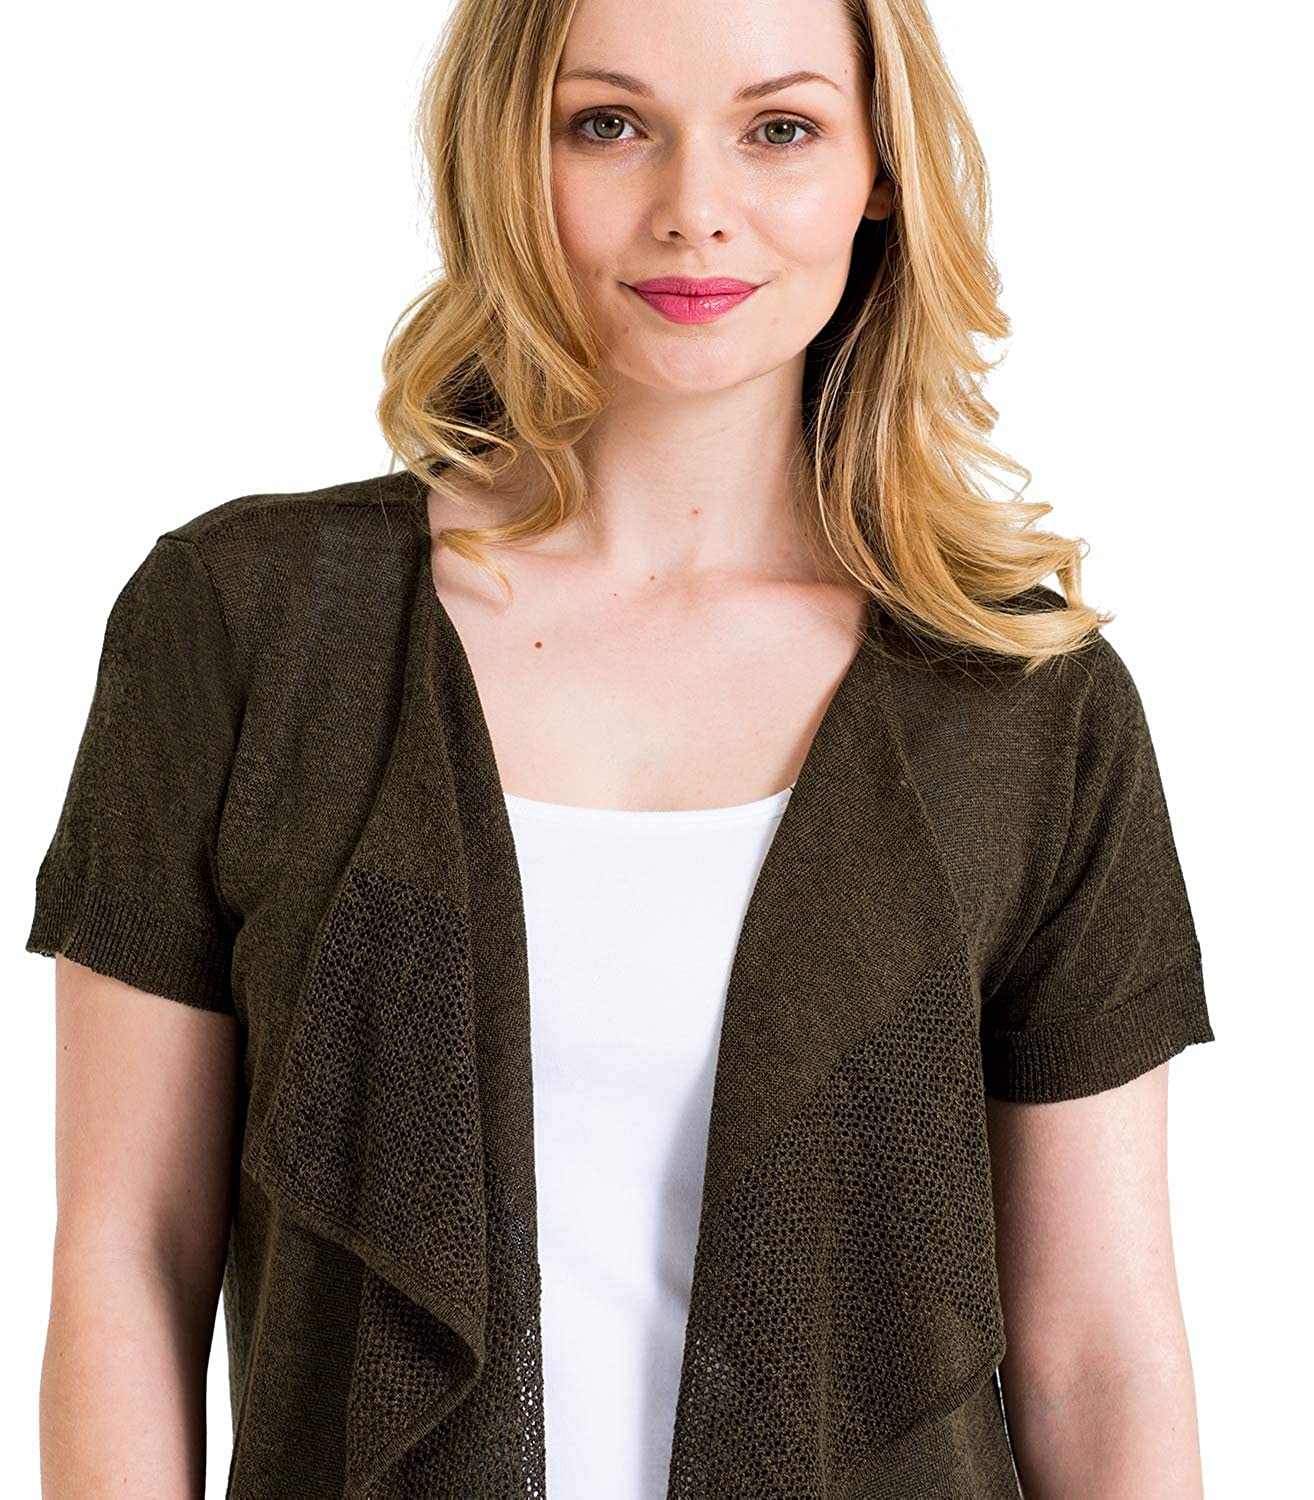 e99b76fe3d Woolovers Womens Lightweight Linen and Viscose Mesh Detail Short Sleeve  Waterfall Knitted Cardigan  Amazon.co.uk  Clothing